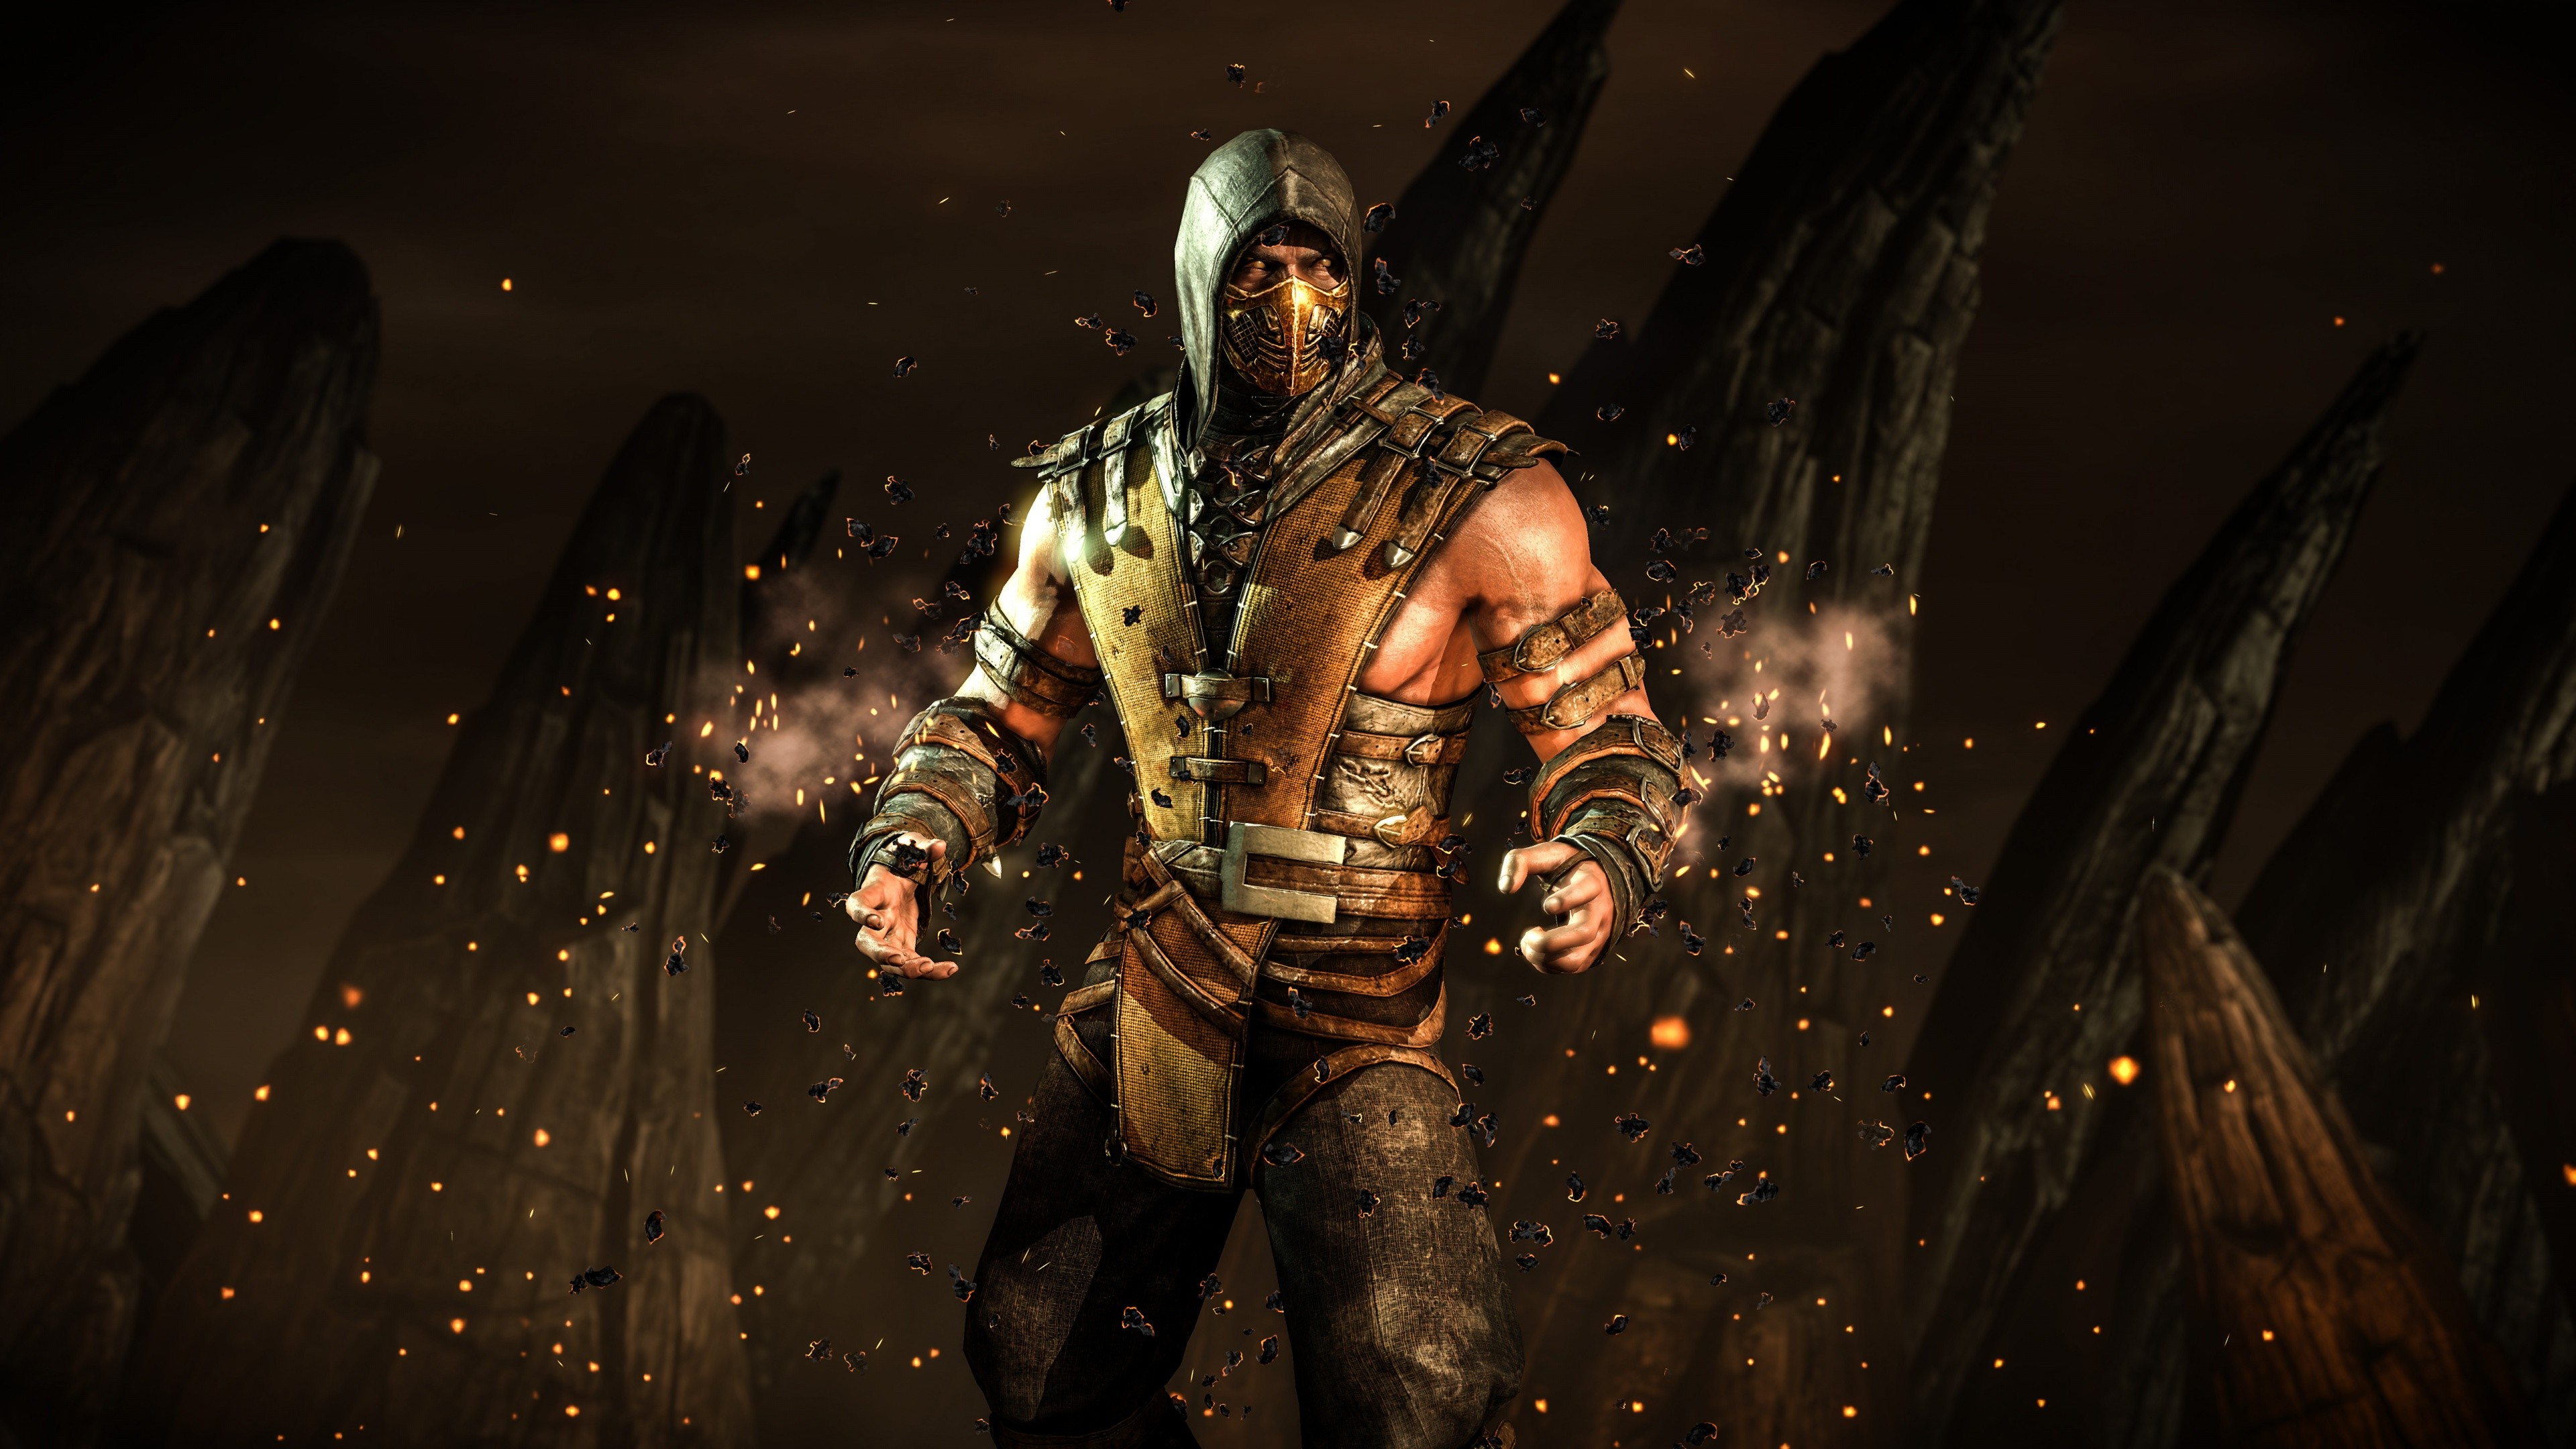 wallpaper mortal kombat x, scorpion, fighting, ps4, xbox one, games